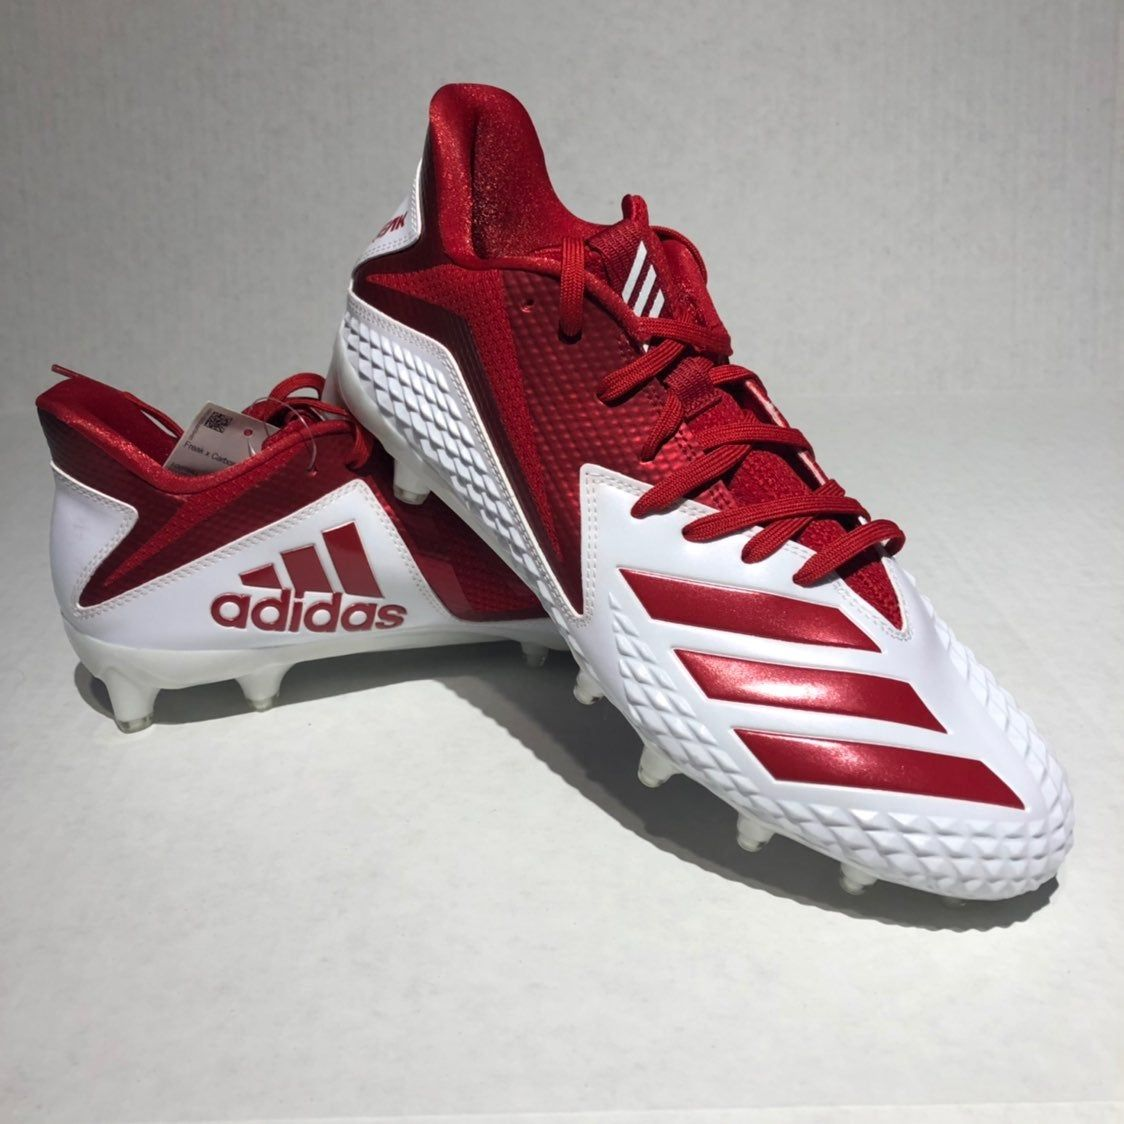 New adidas mens freak x carbon football cleats whitered